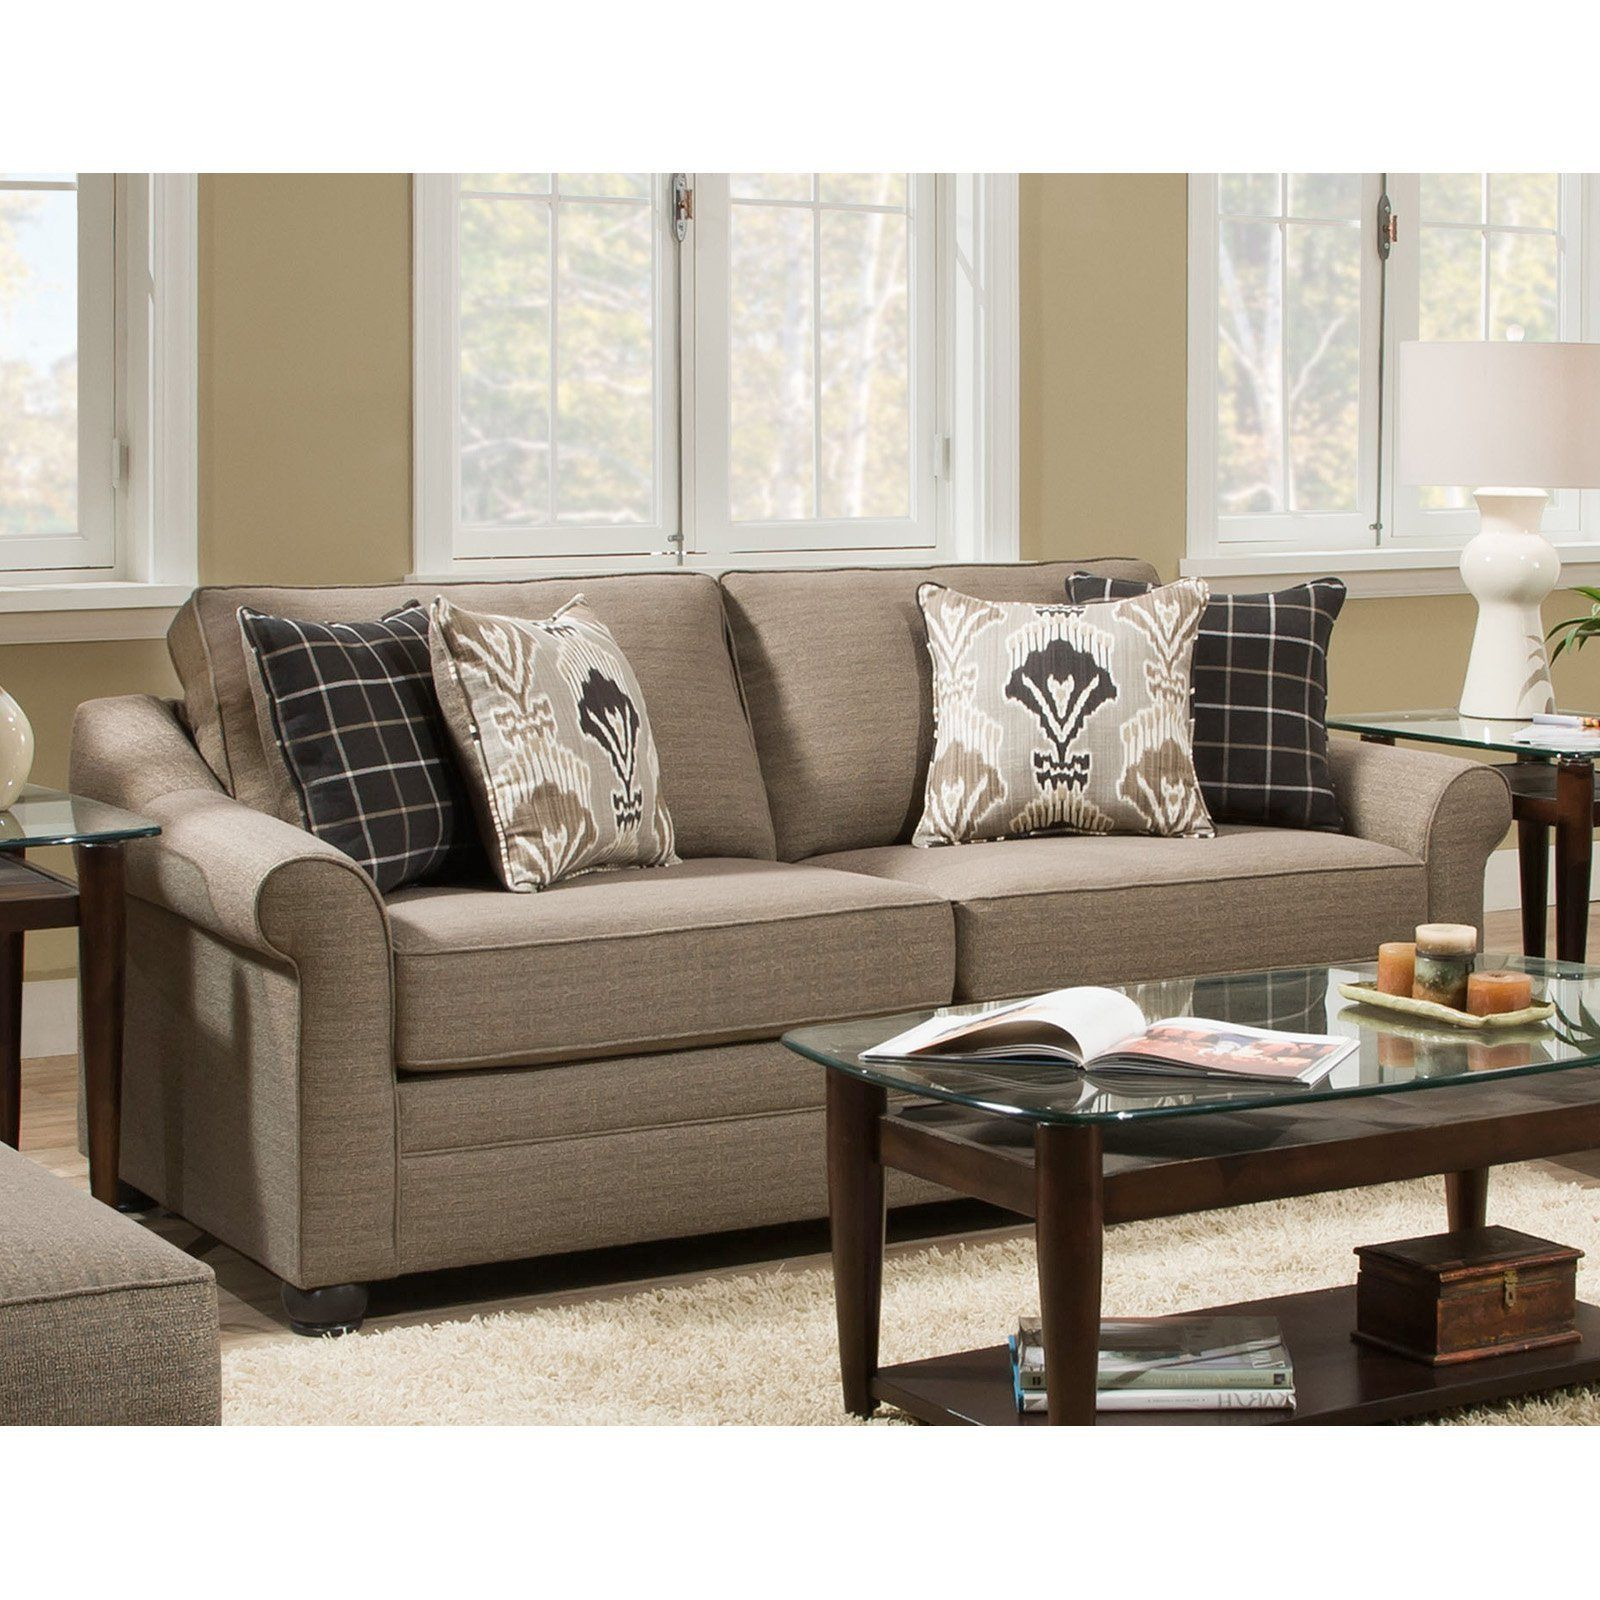 United Furniture Seguin Driftwood Sofa 1610 03 SEGUIN DRIFTWOOD